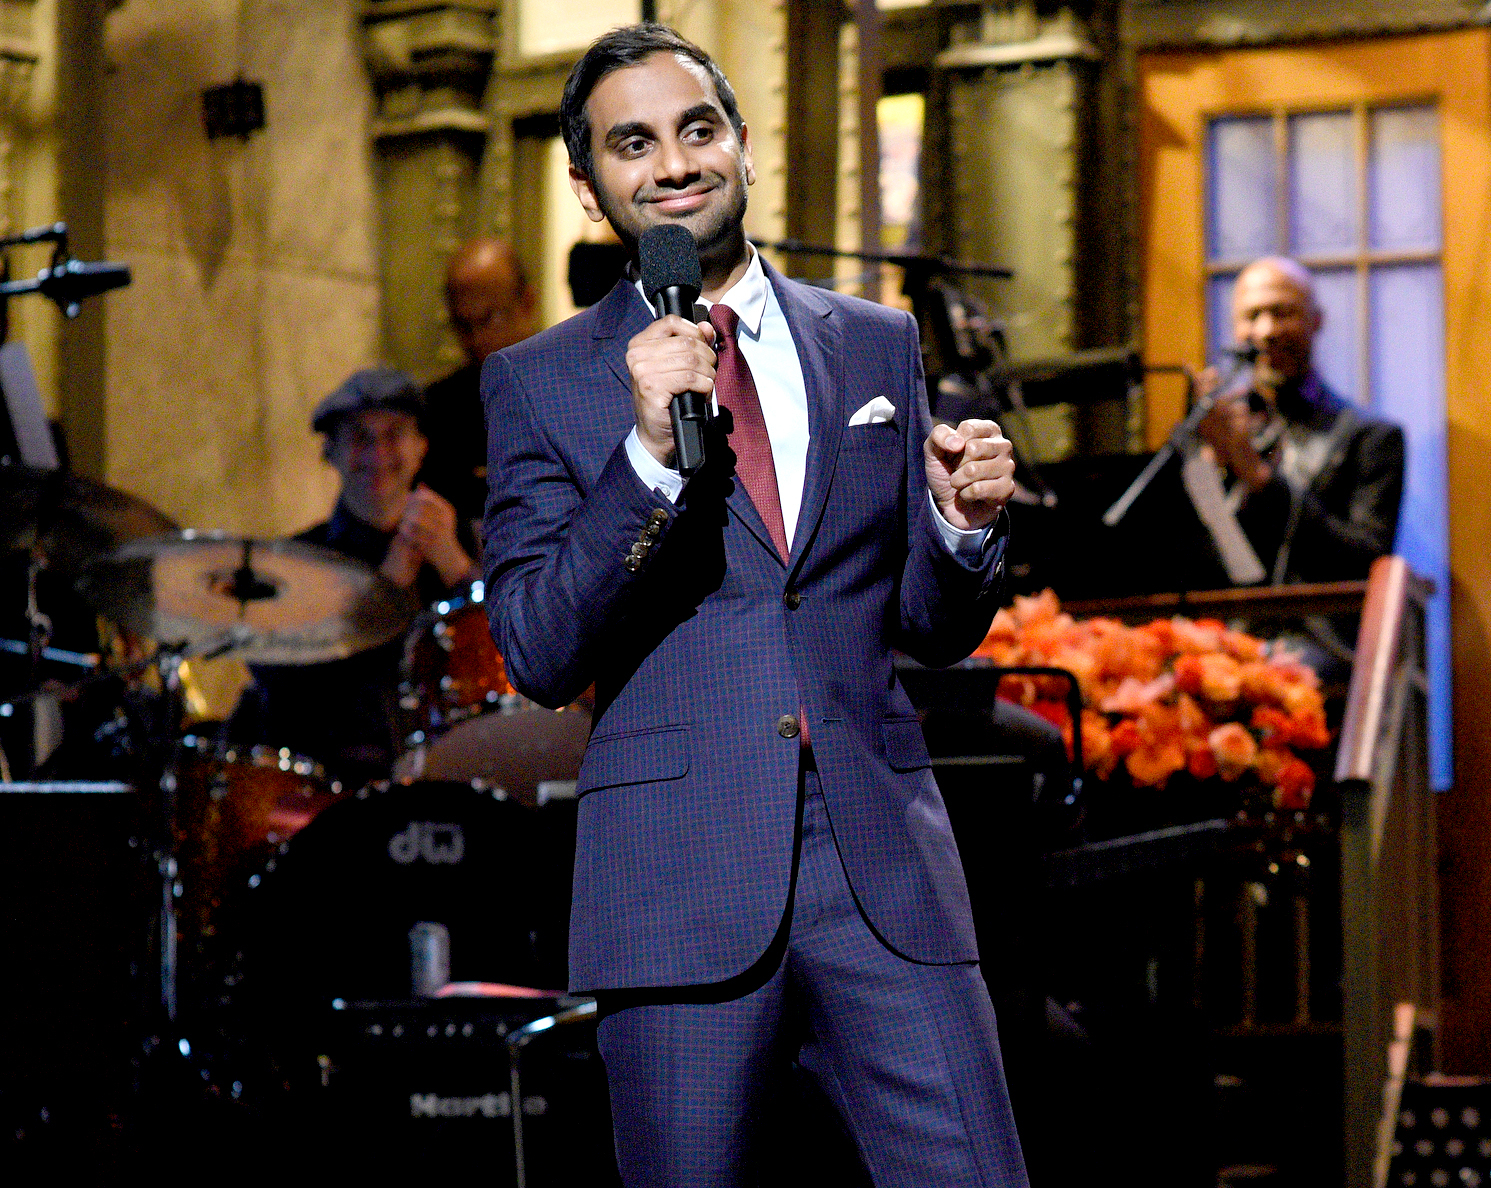 Host Aziz Ansari during the stand-up monologue on Jan. 21, 2017.